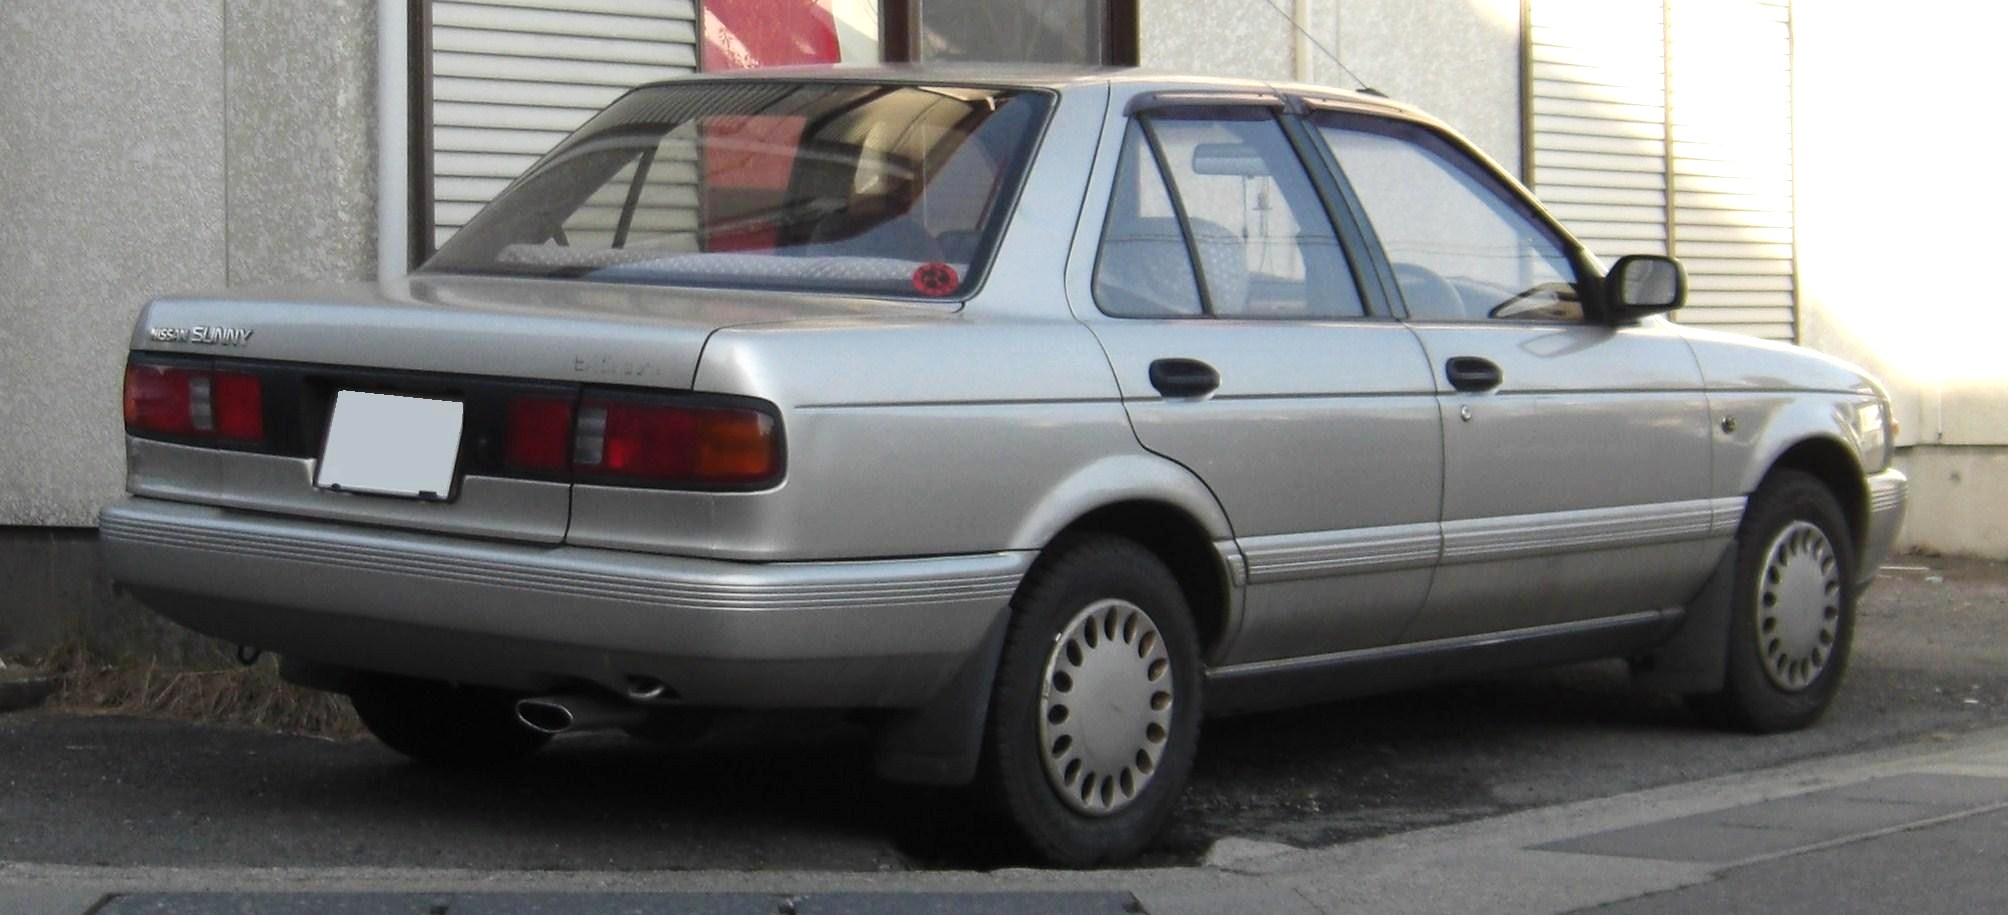 1990 Nissan Sunny iii (b13) – pictures, information and ...